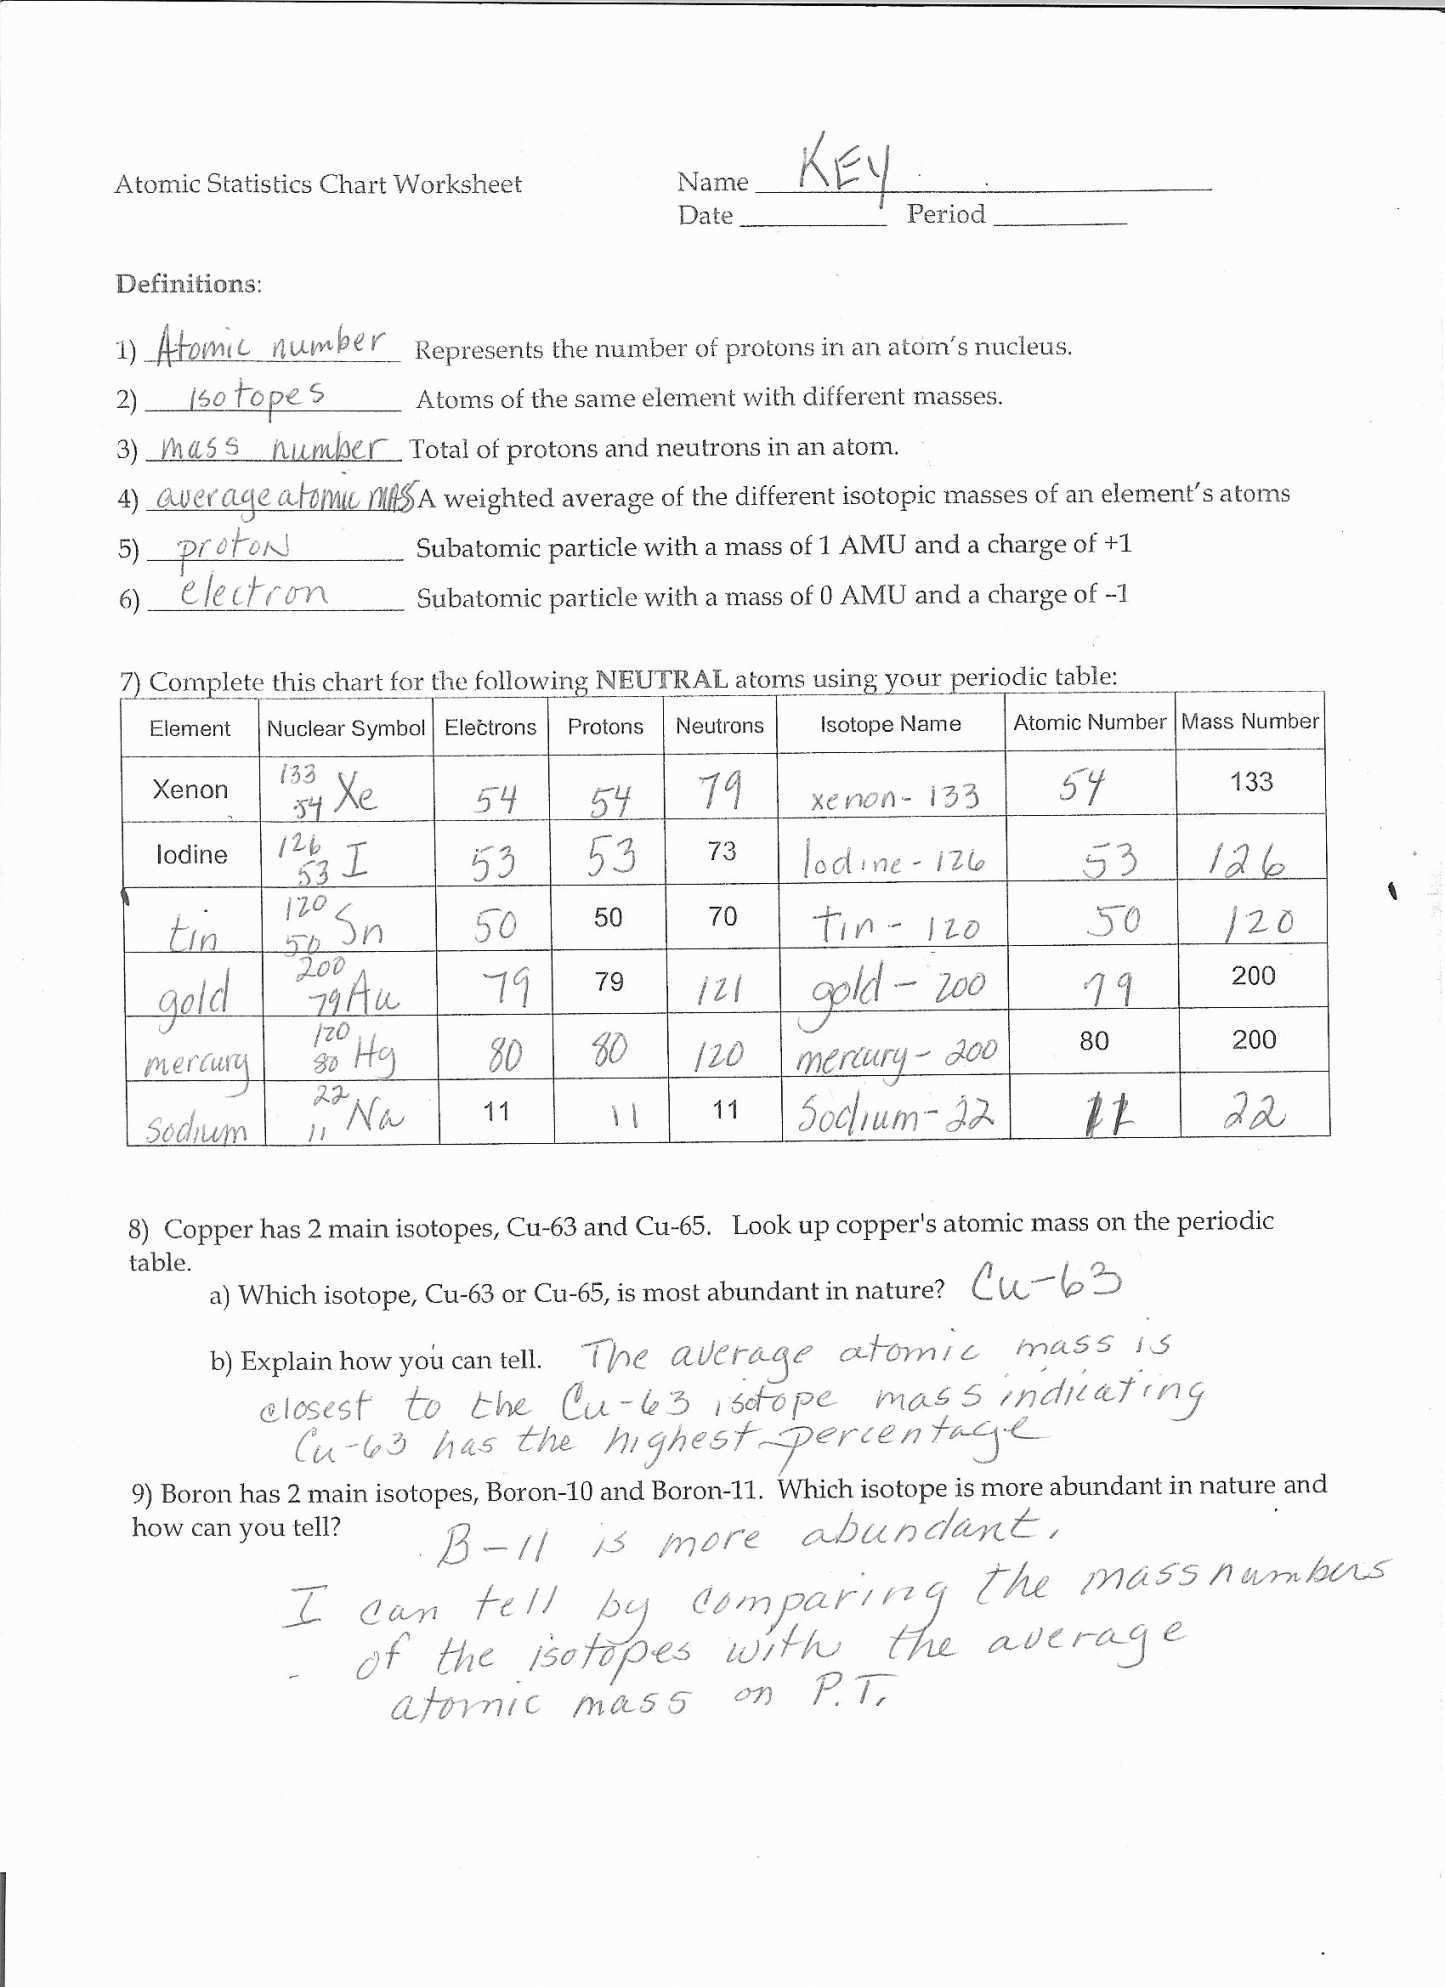 Periodic Table Practice Worksheet Answers Periodic Table Practice Worksheet Answers Nidecmege